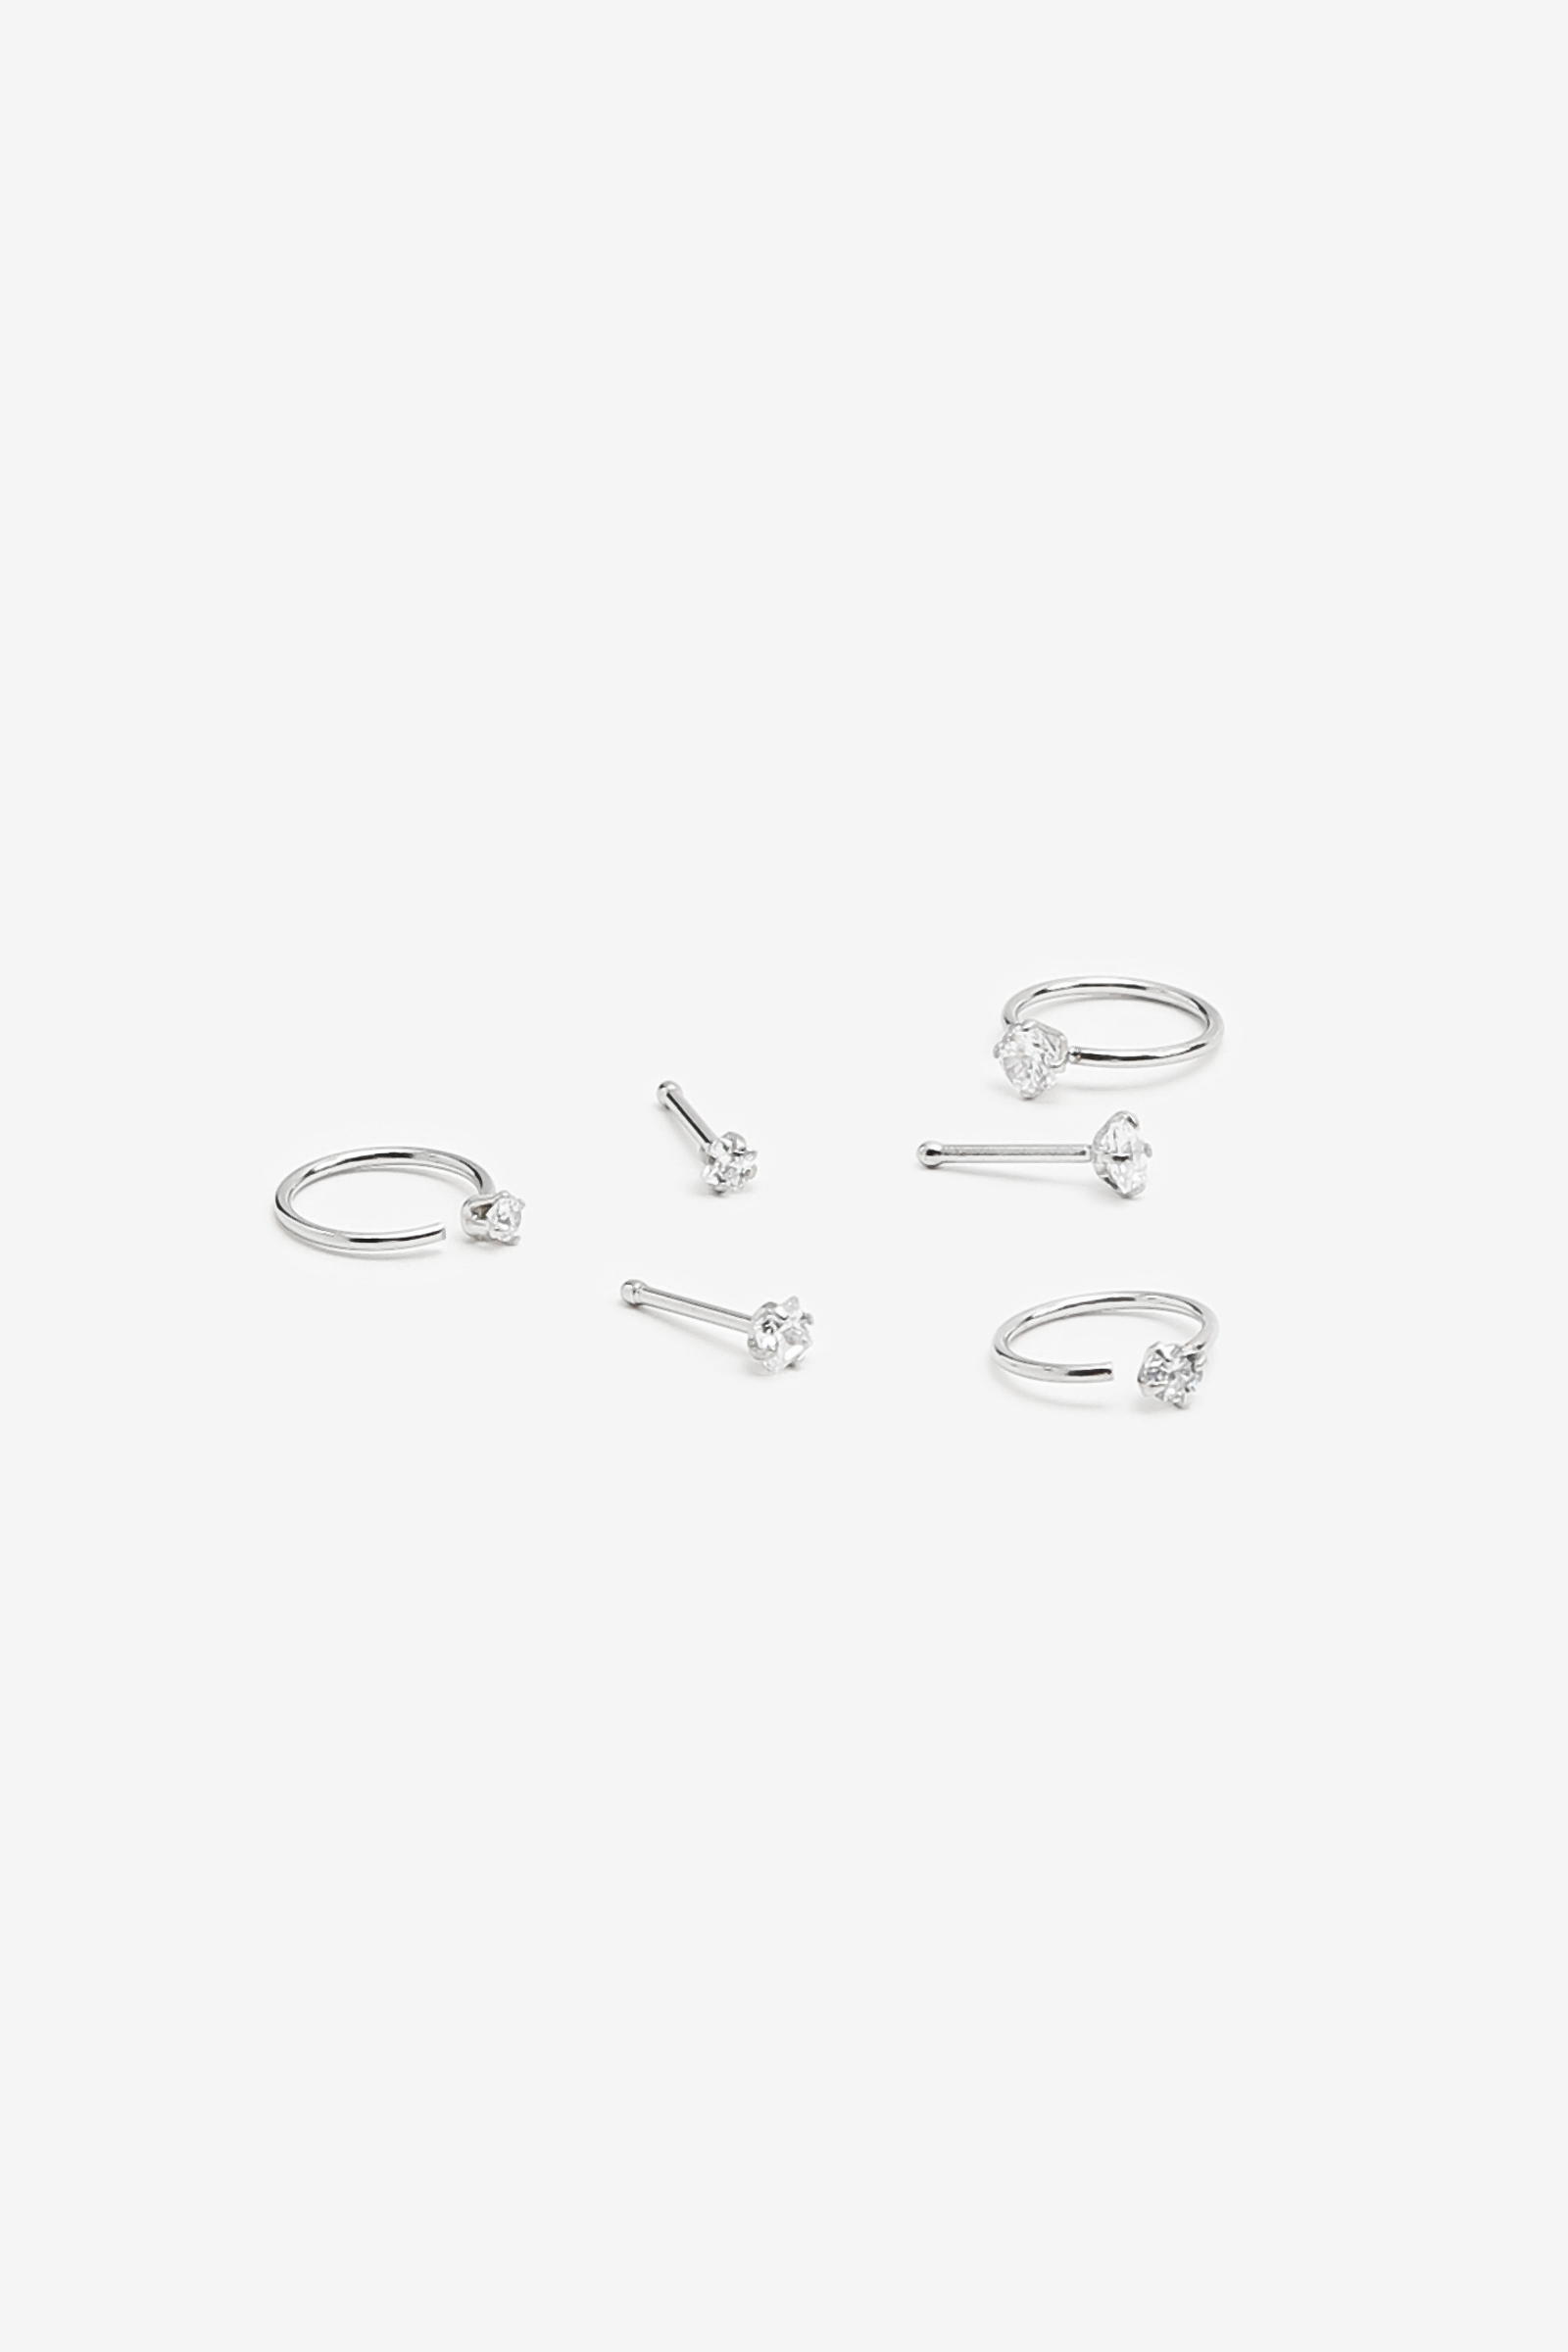 Pack of Nose Piercings with Crystals